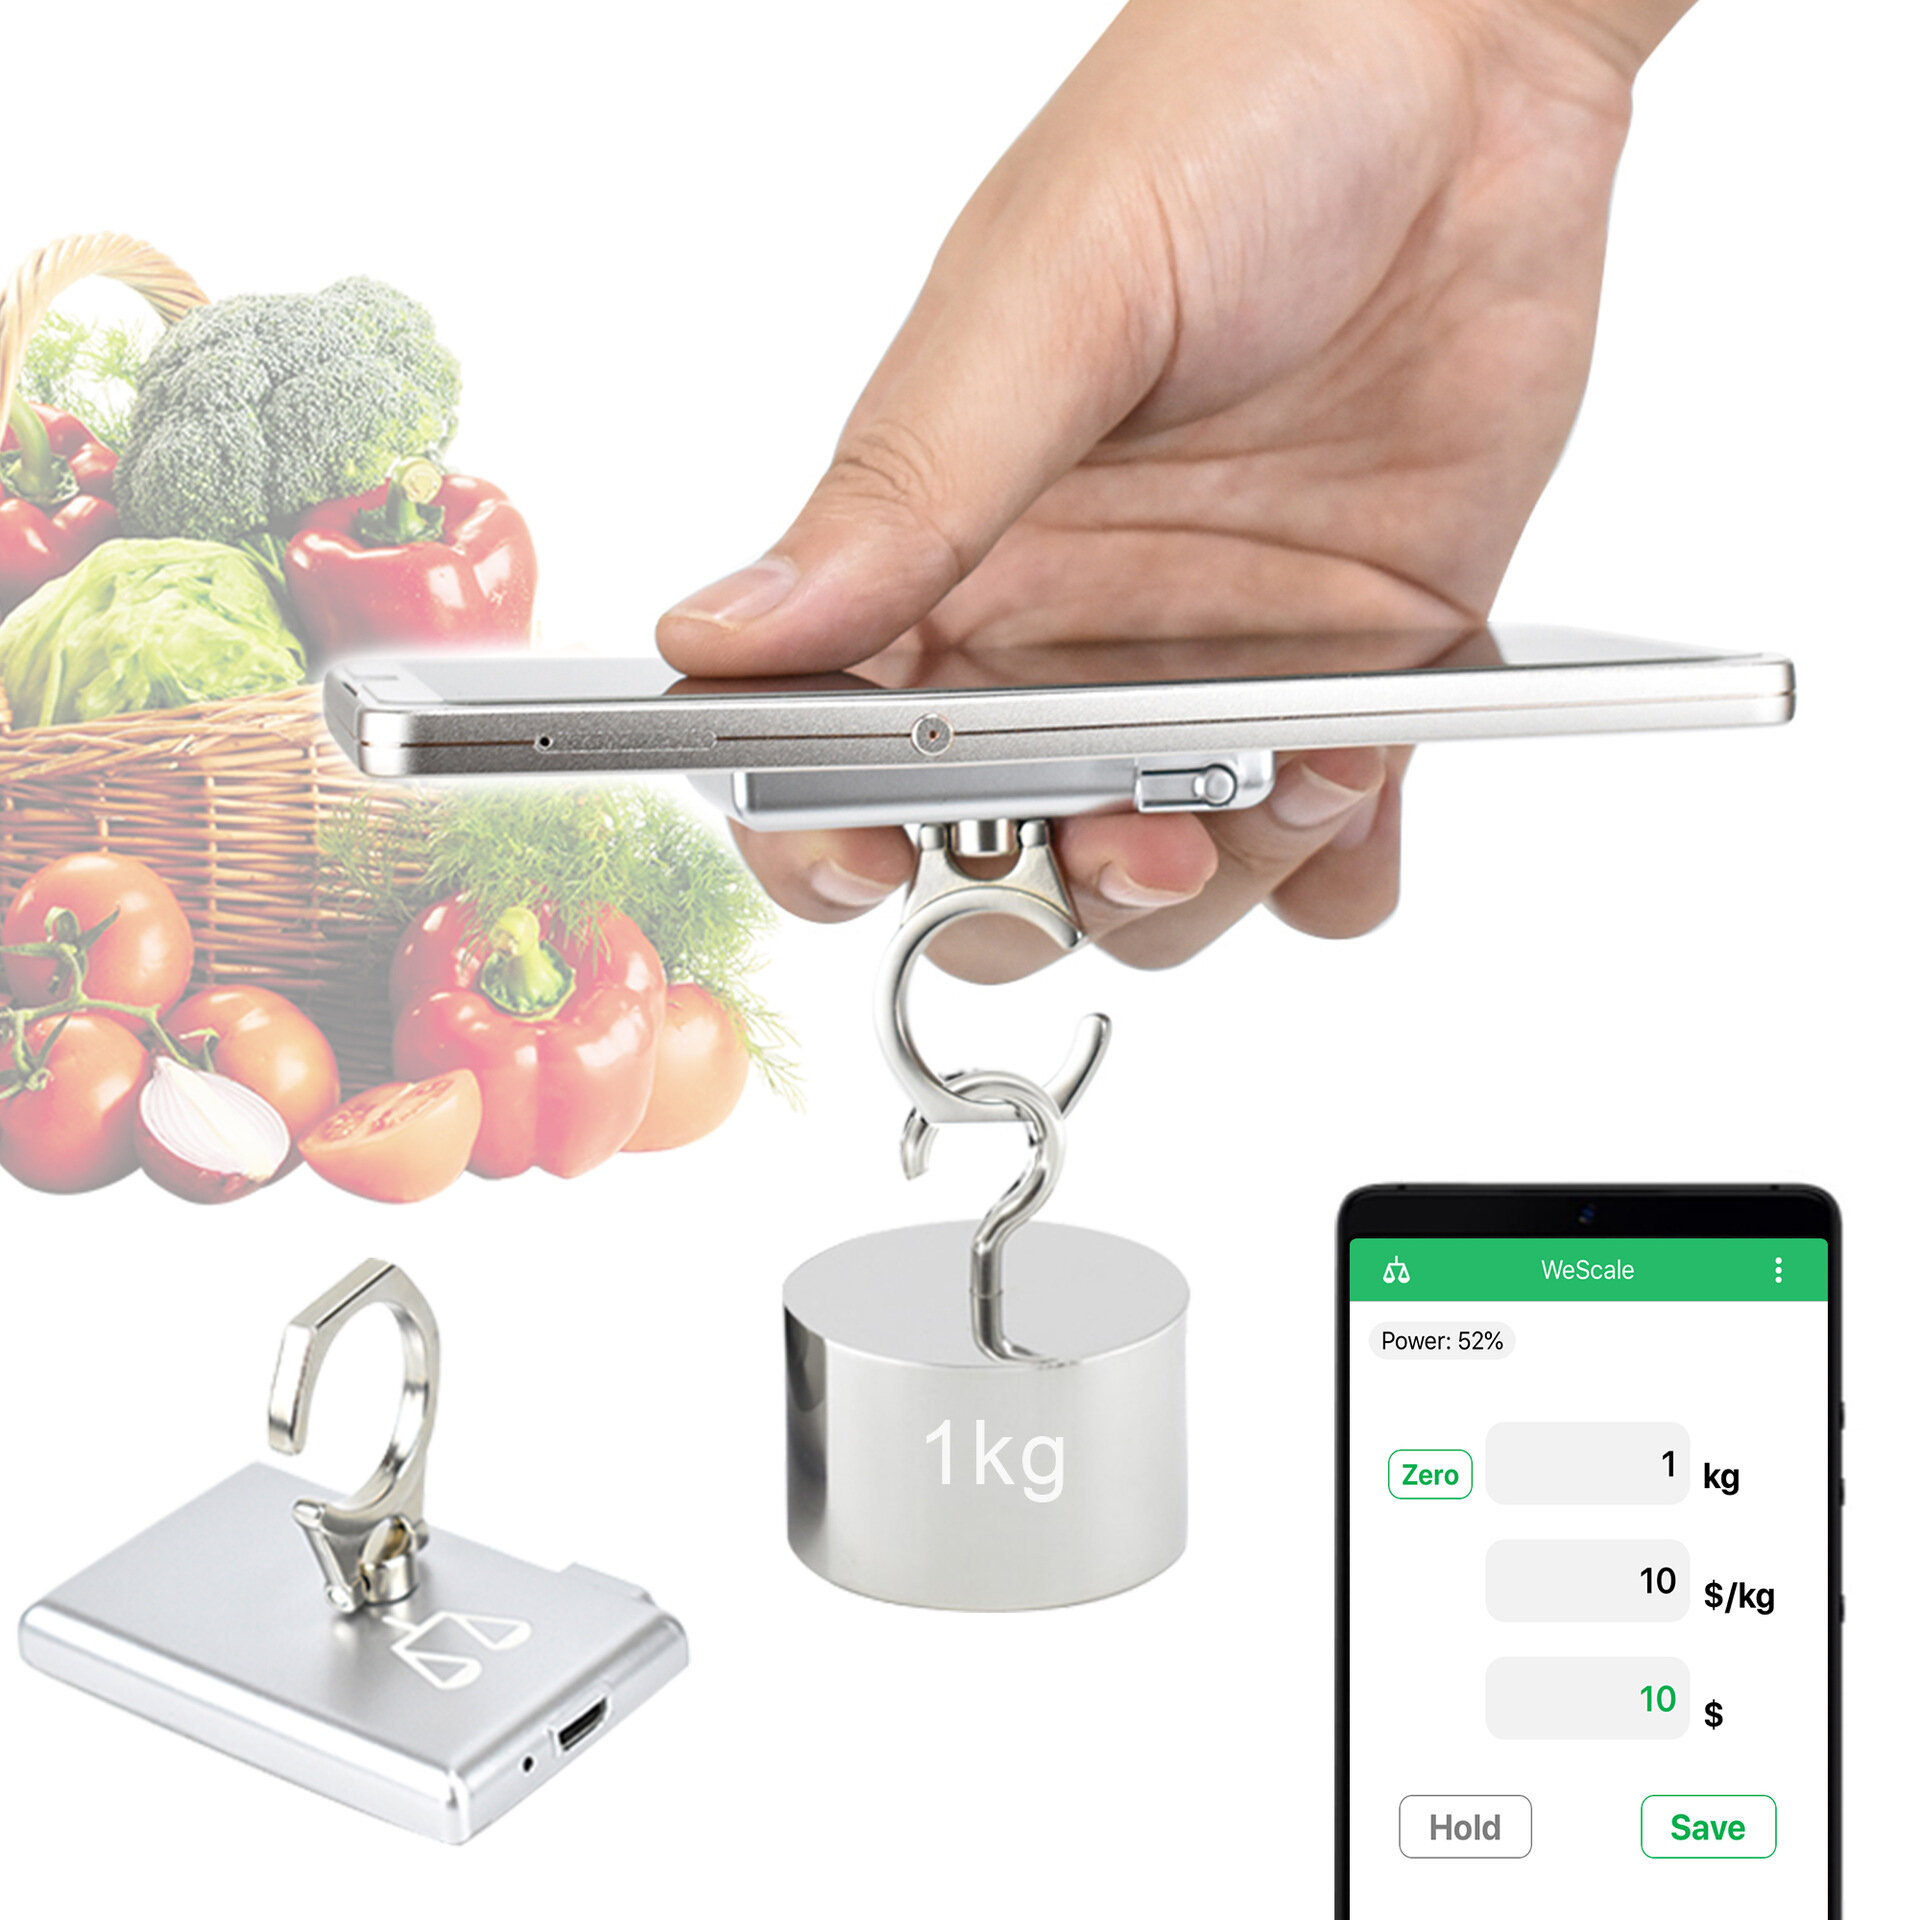 KCASA Portable Mobile Mini Phone Holder Kitchen Scales Electronic Scale Food Diet Kitchen Digital Scale Postal Scales Cooking Tools